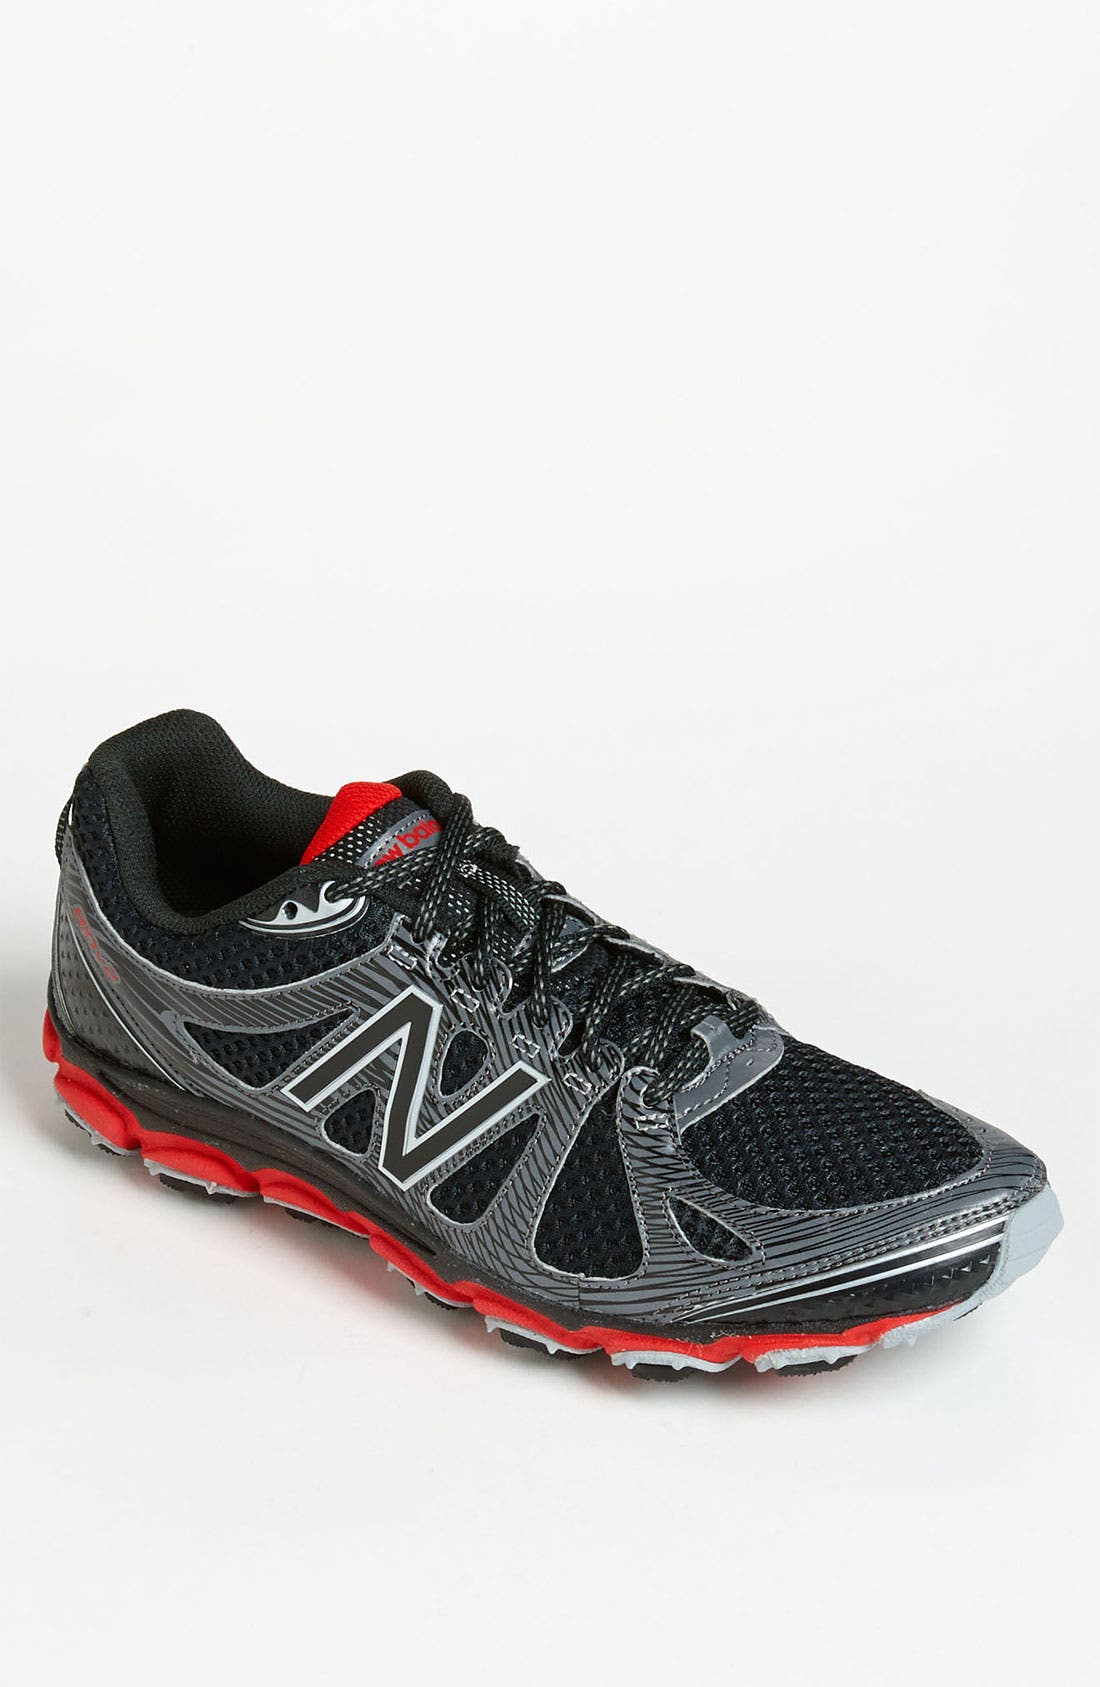 Main Image - New Balance '810v2' Trail Running Shoe (Men)